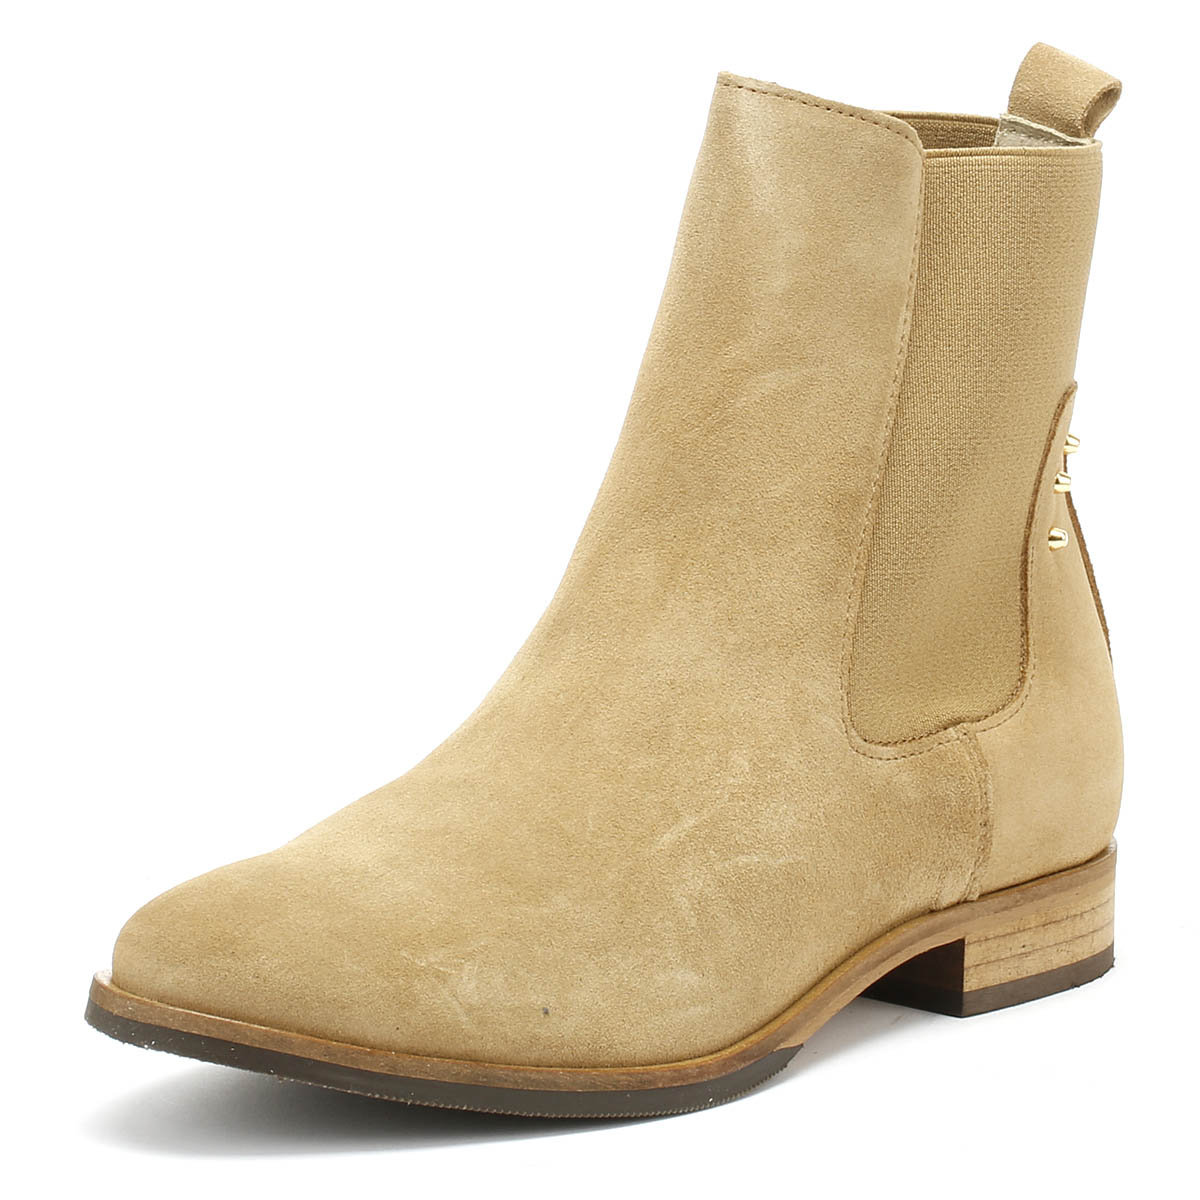 fda18cf41df Shoe The Bear Marla Womens Boots Sand Beige Suede Winter Ankle Shoes ...